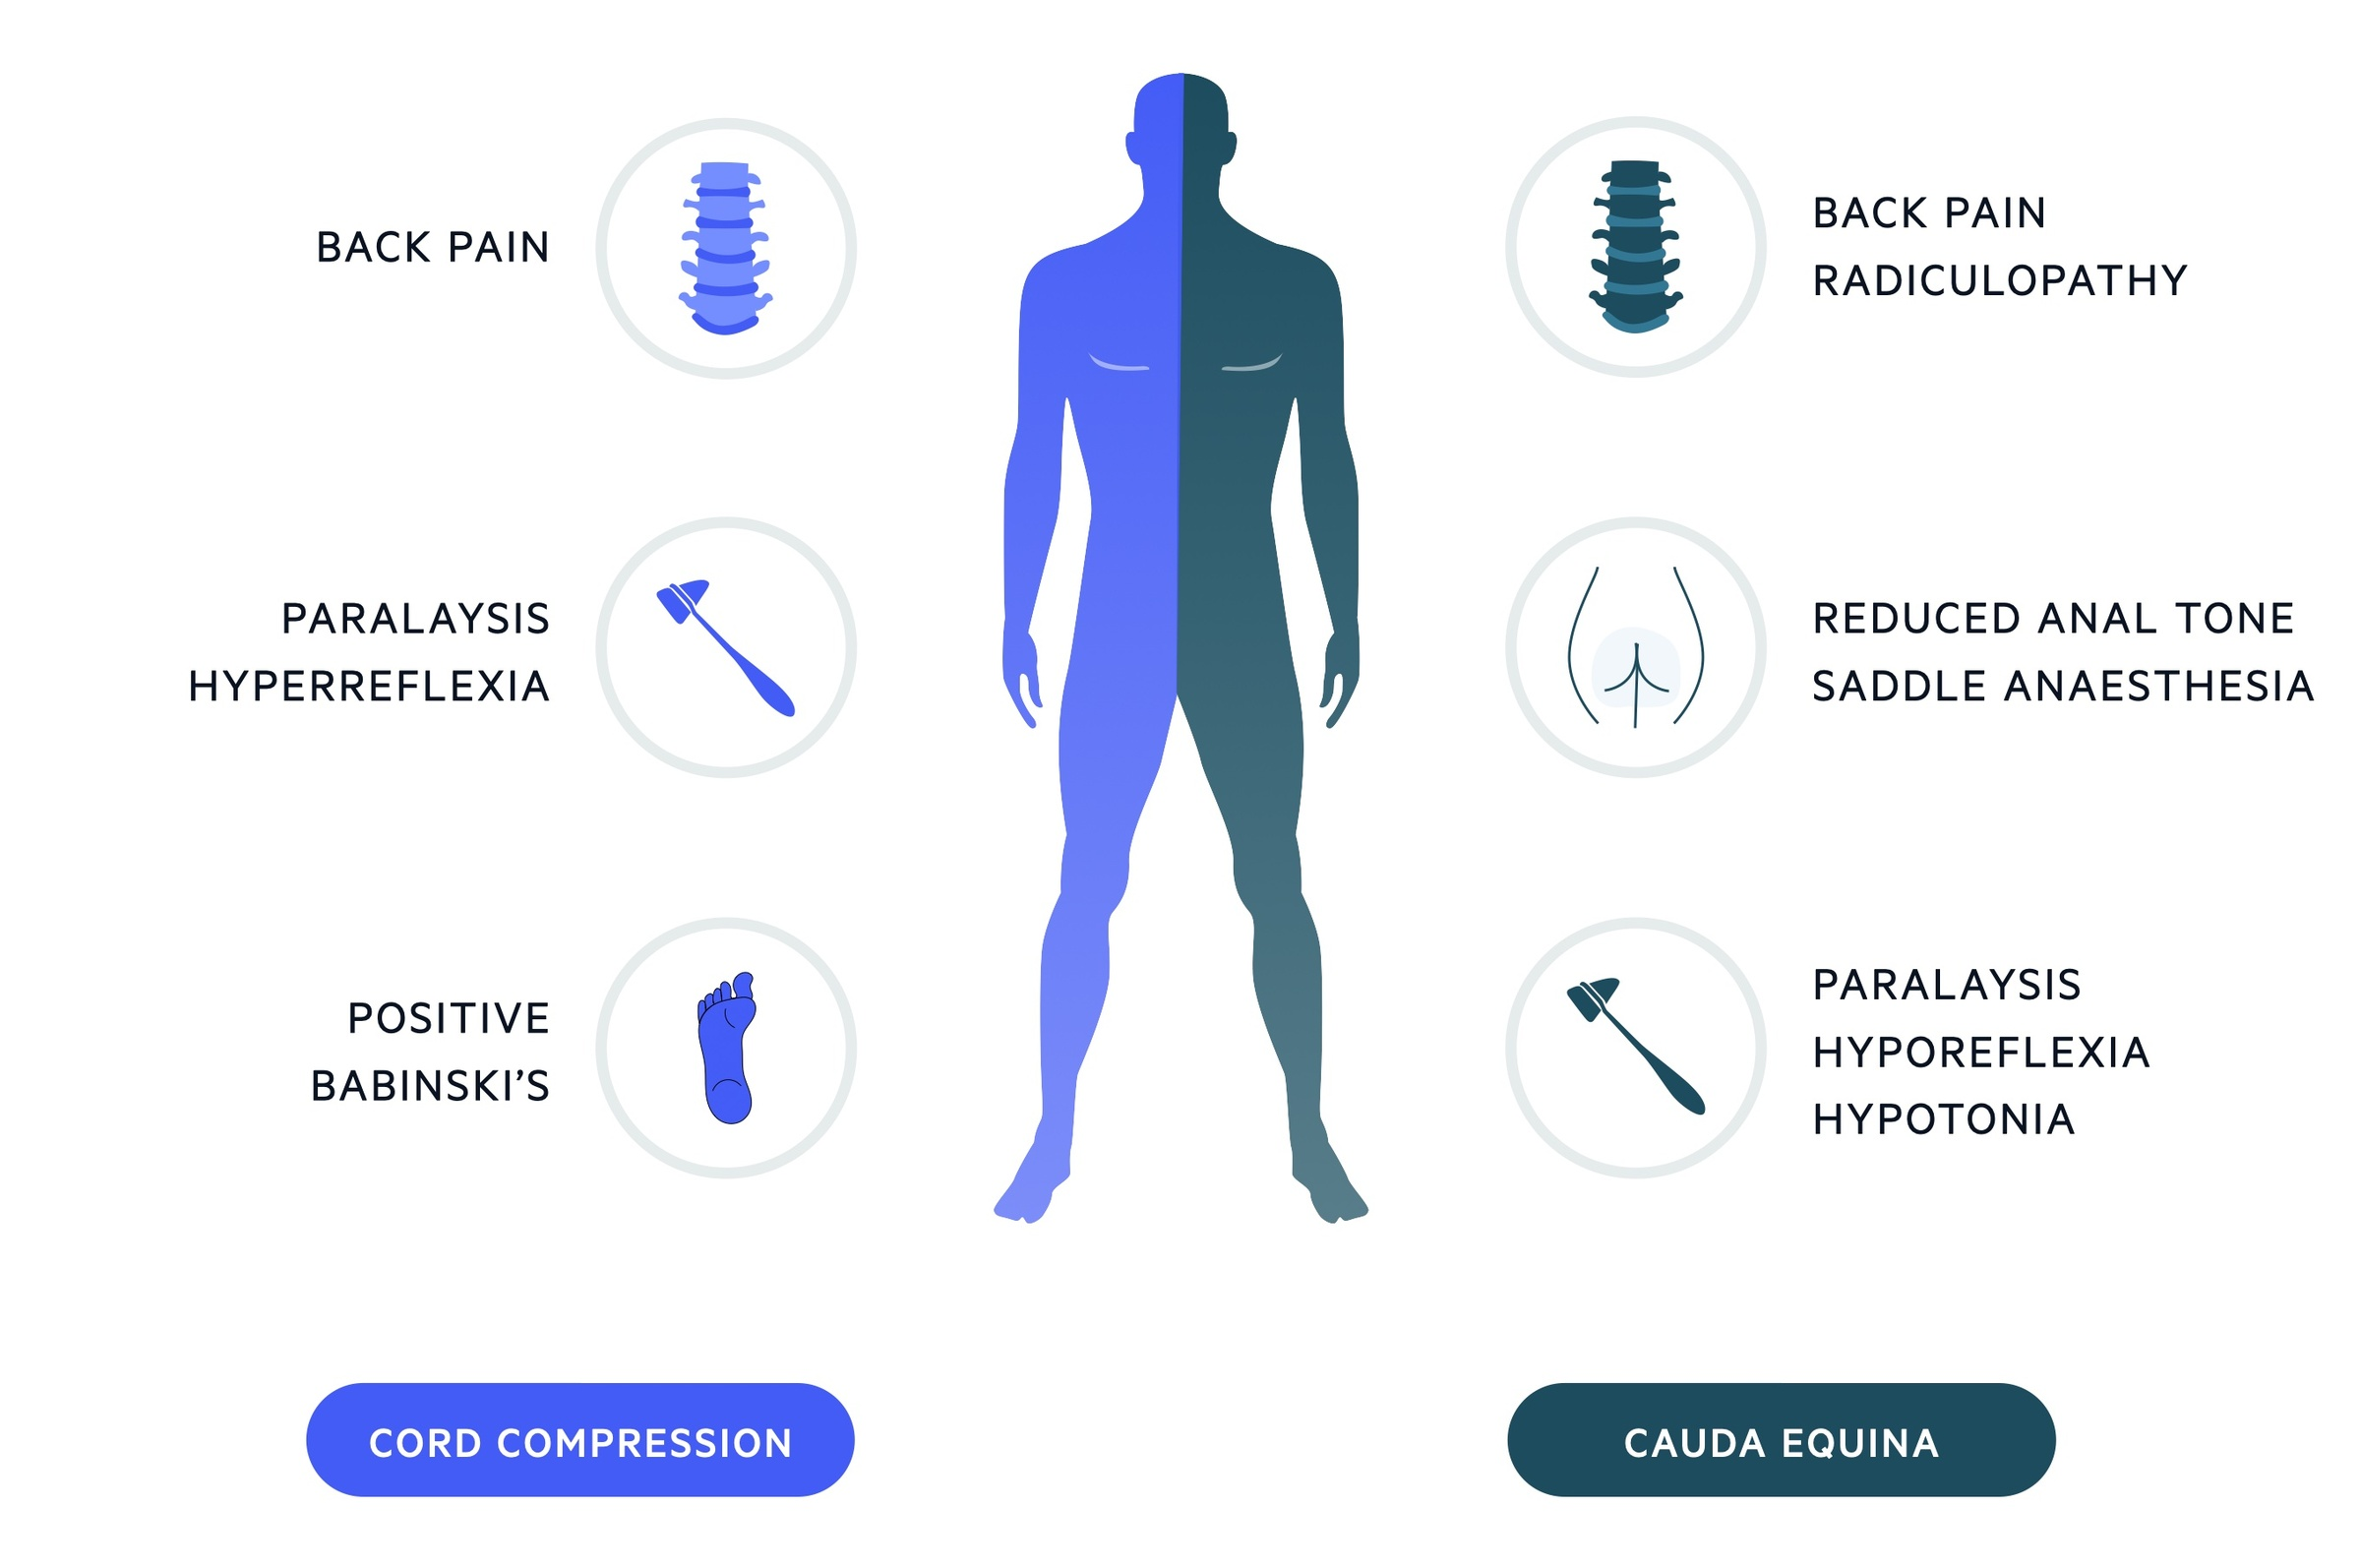 Clinical features of cord compression and cauda equina